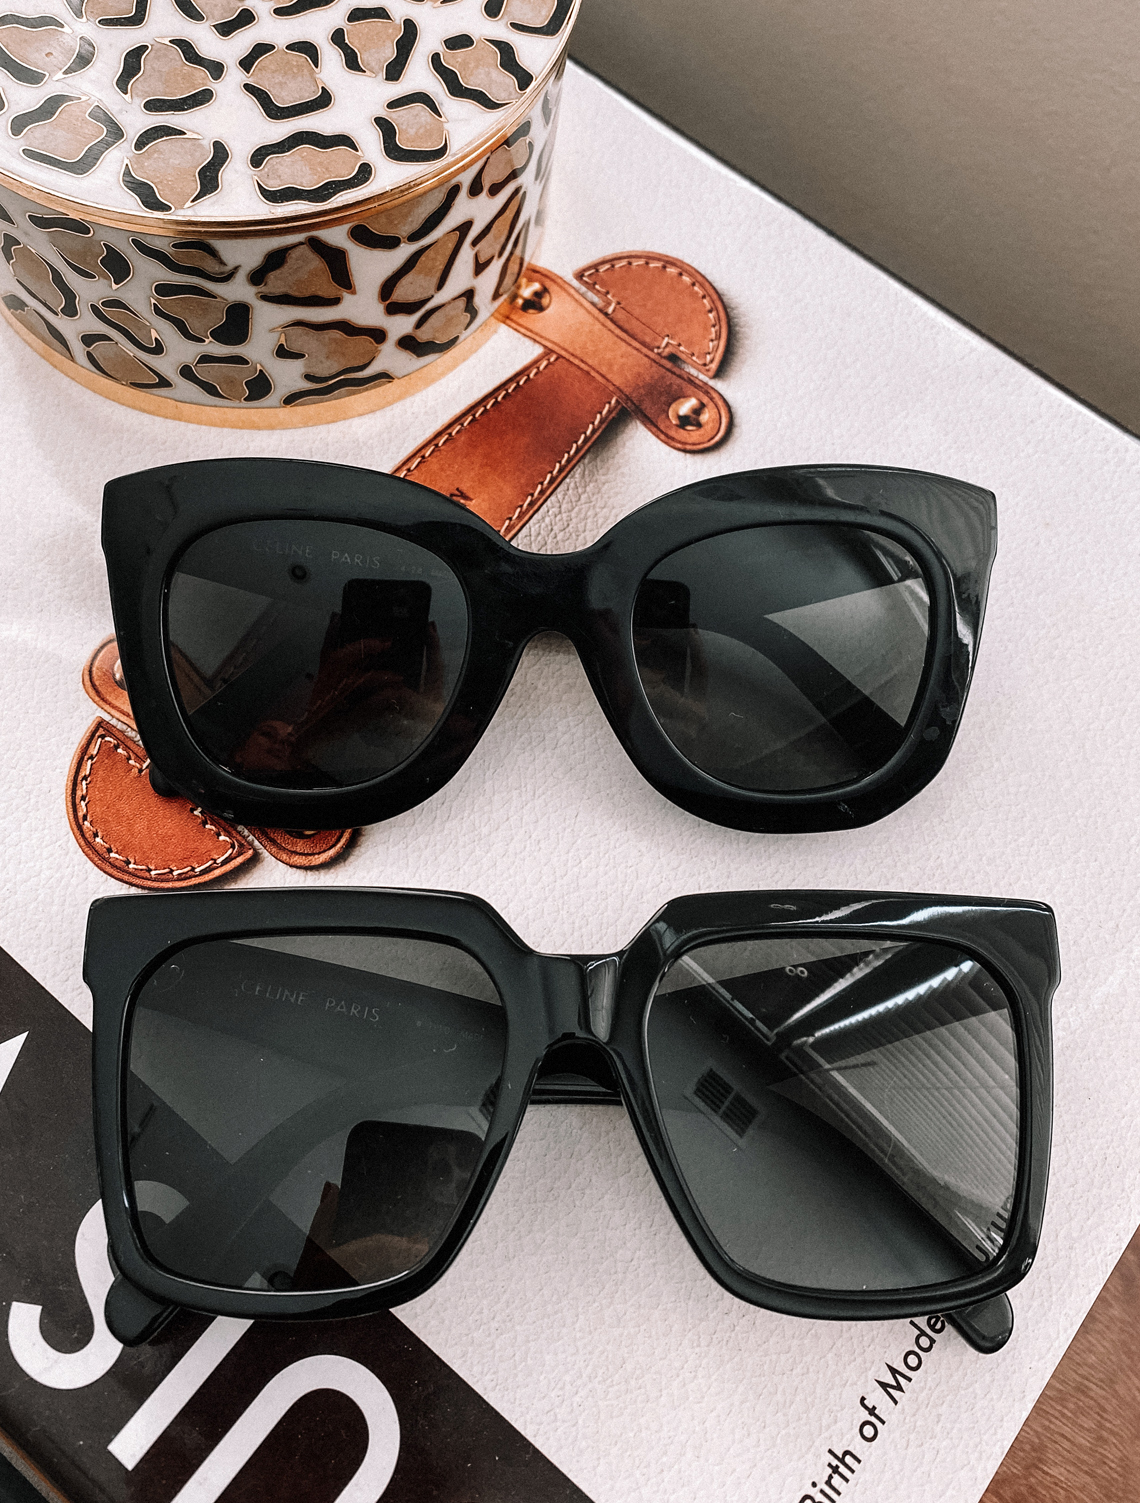 Fashion Jackson Black Celine Sunglasses